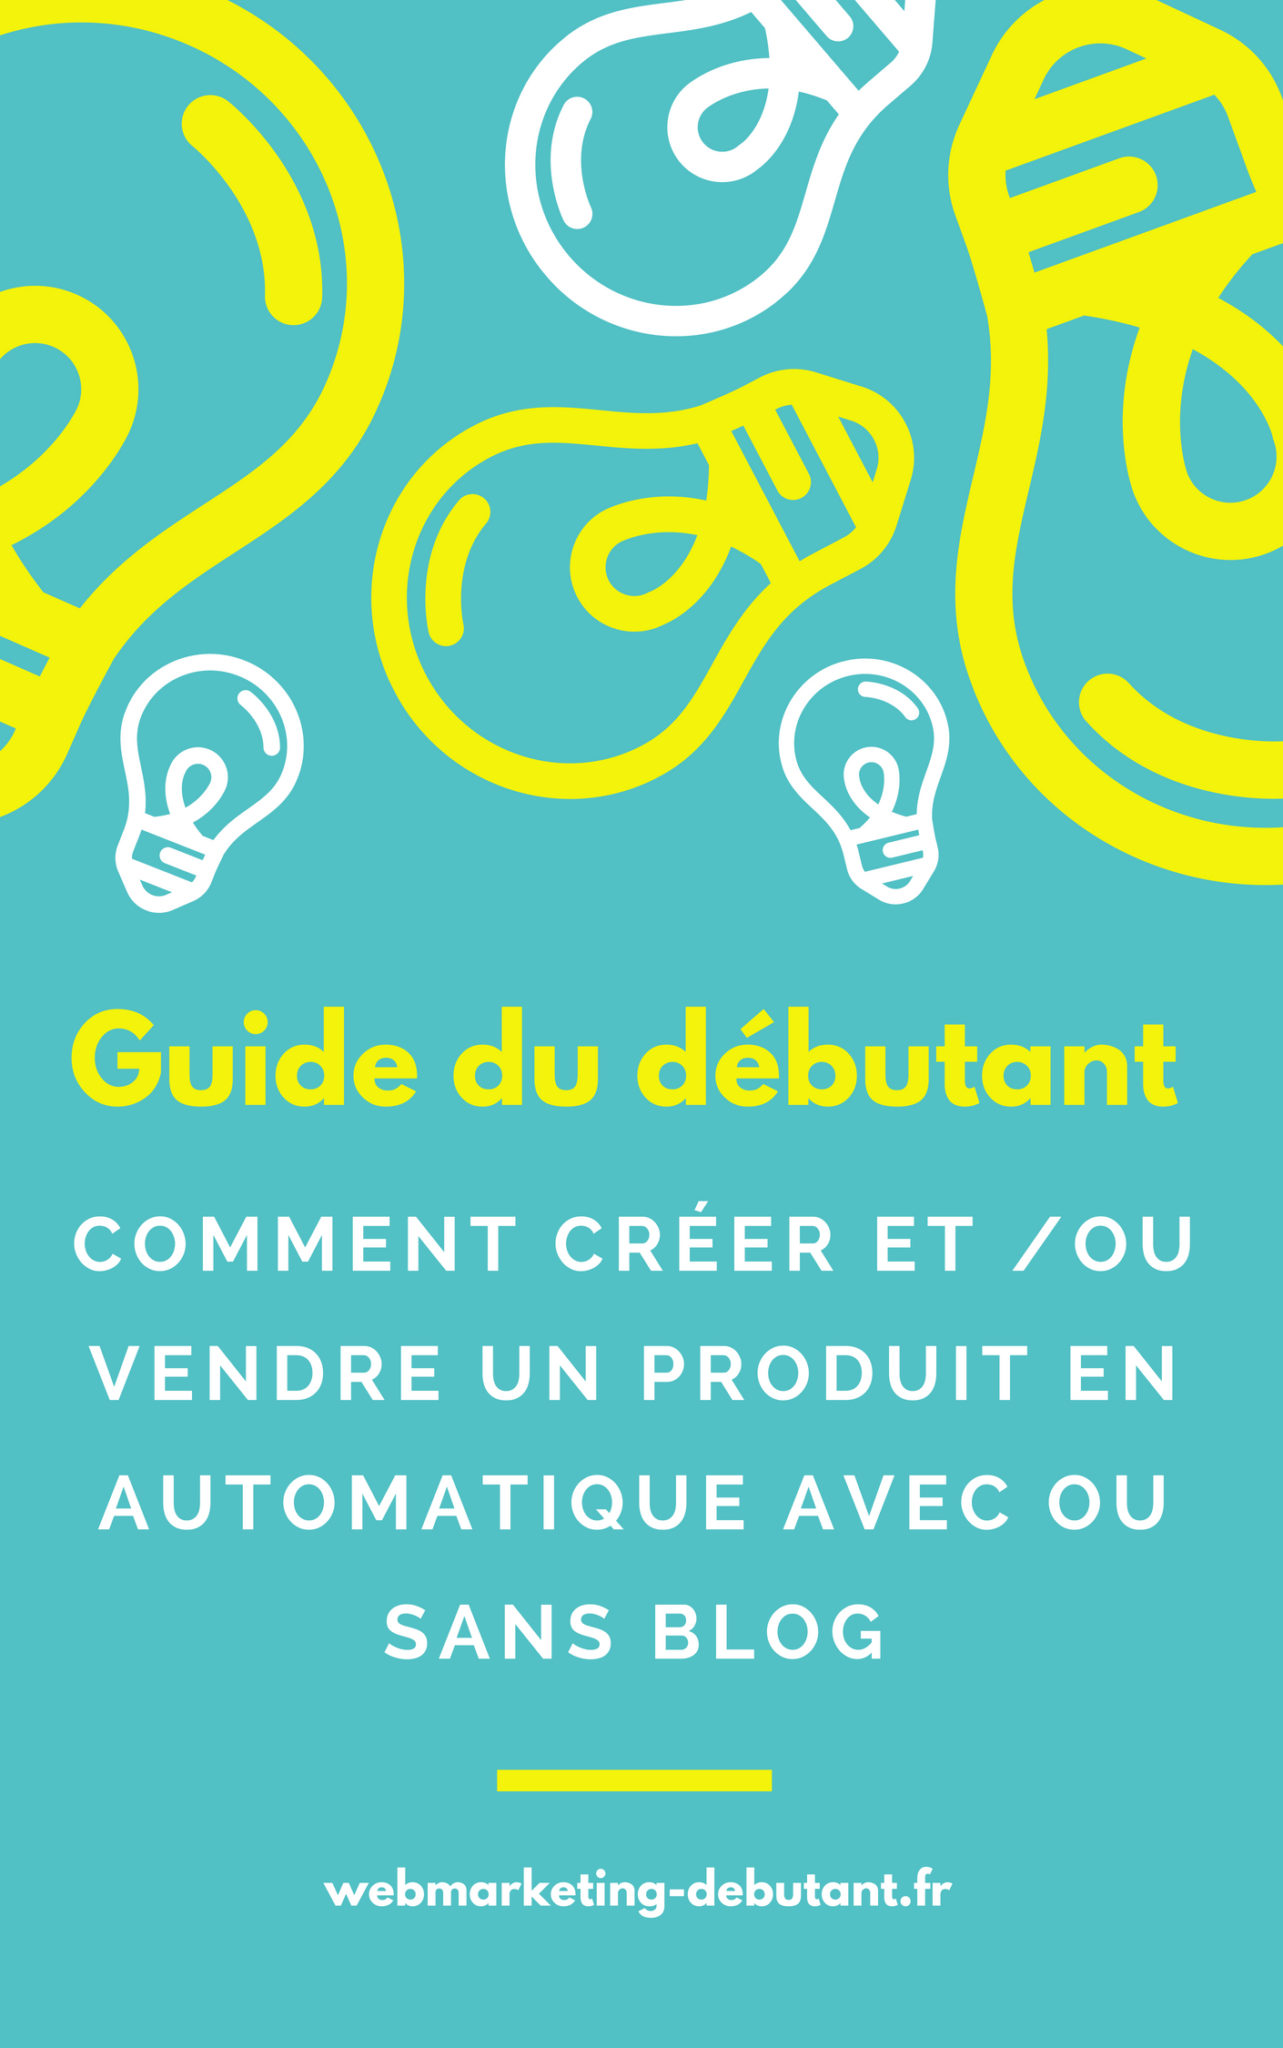 Guide du débutant en webmarketing